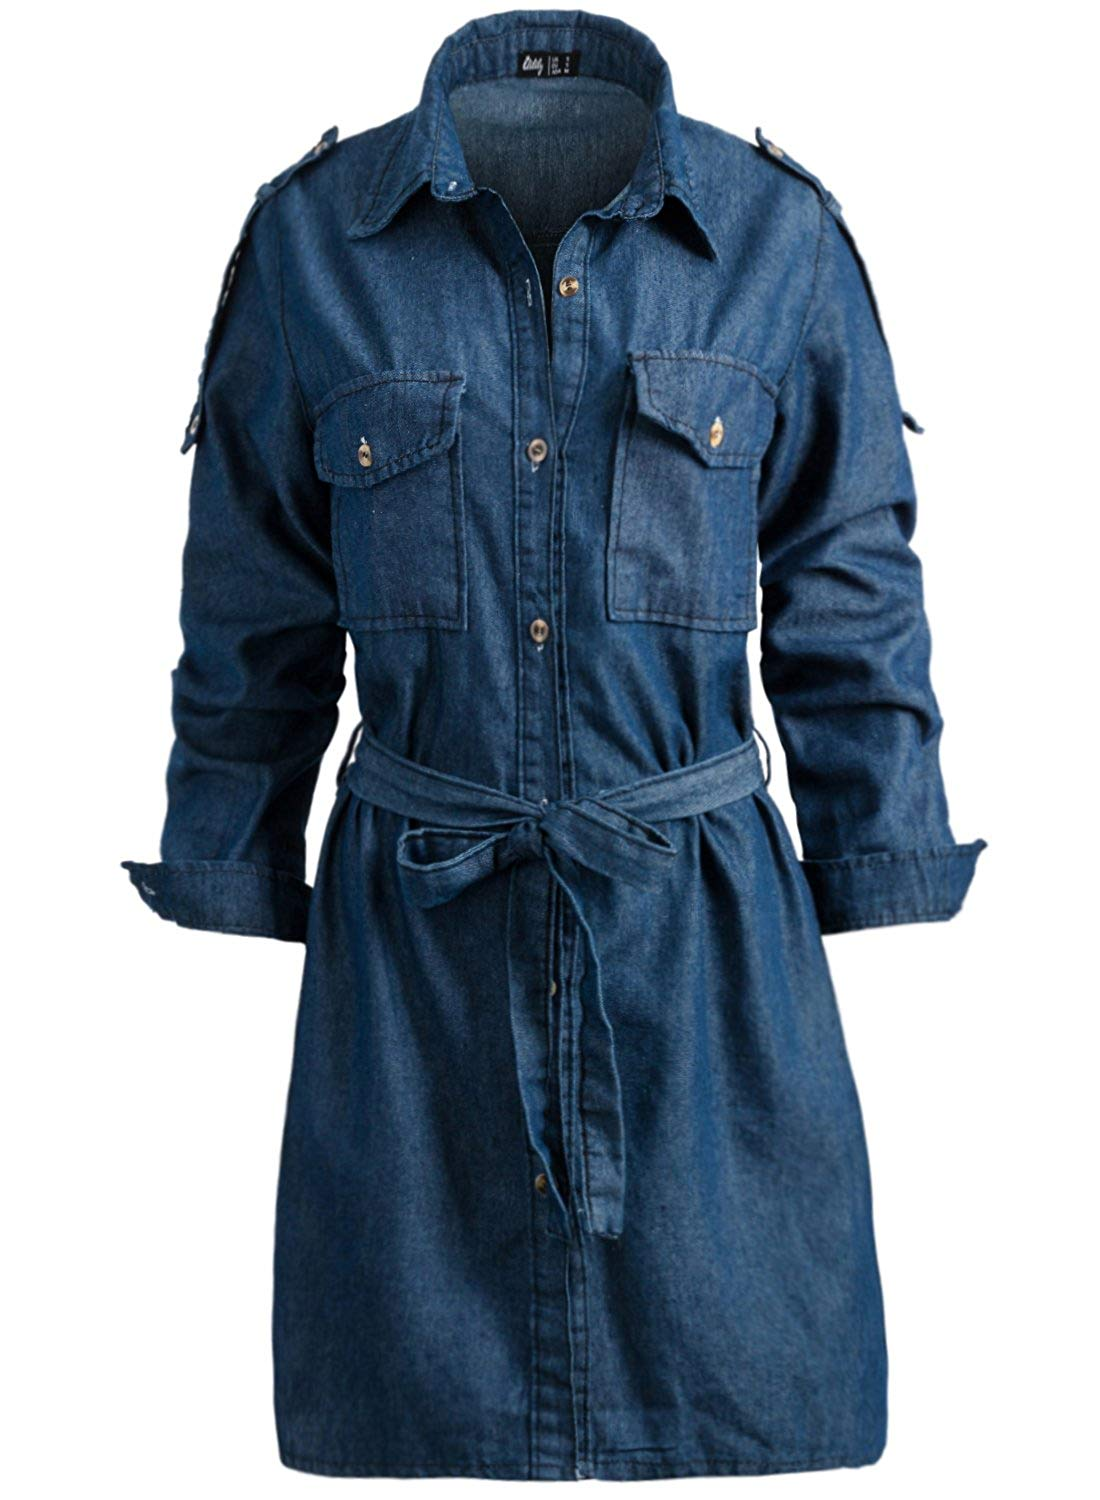 45cce5443a Get Quotations · ililily Women Button Down Chambray Denim Long Sleeves Tunic  Blouse Belted Shirt Mini Dress